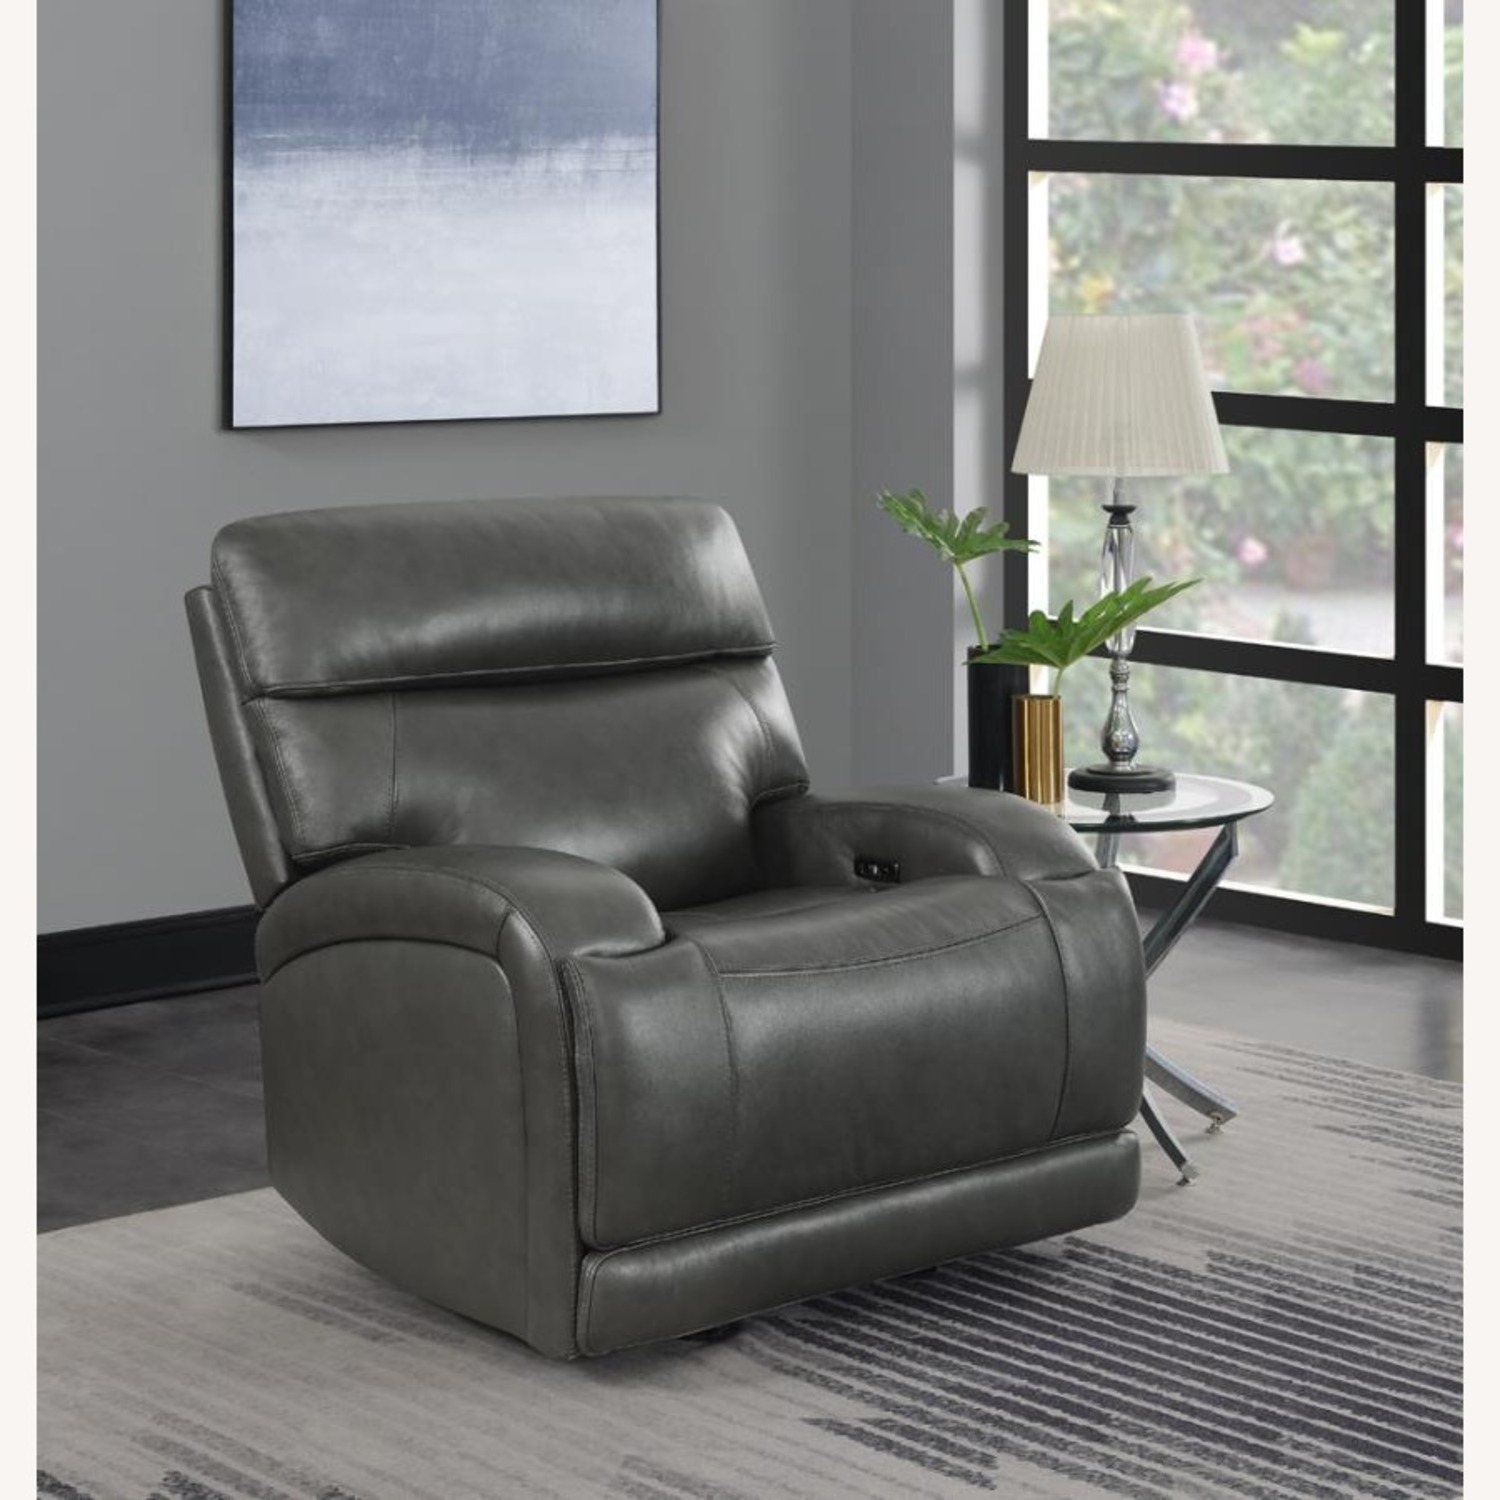 Power Recliner Chair In Charcoal Leatherette - image-7